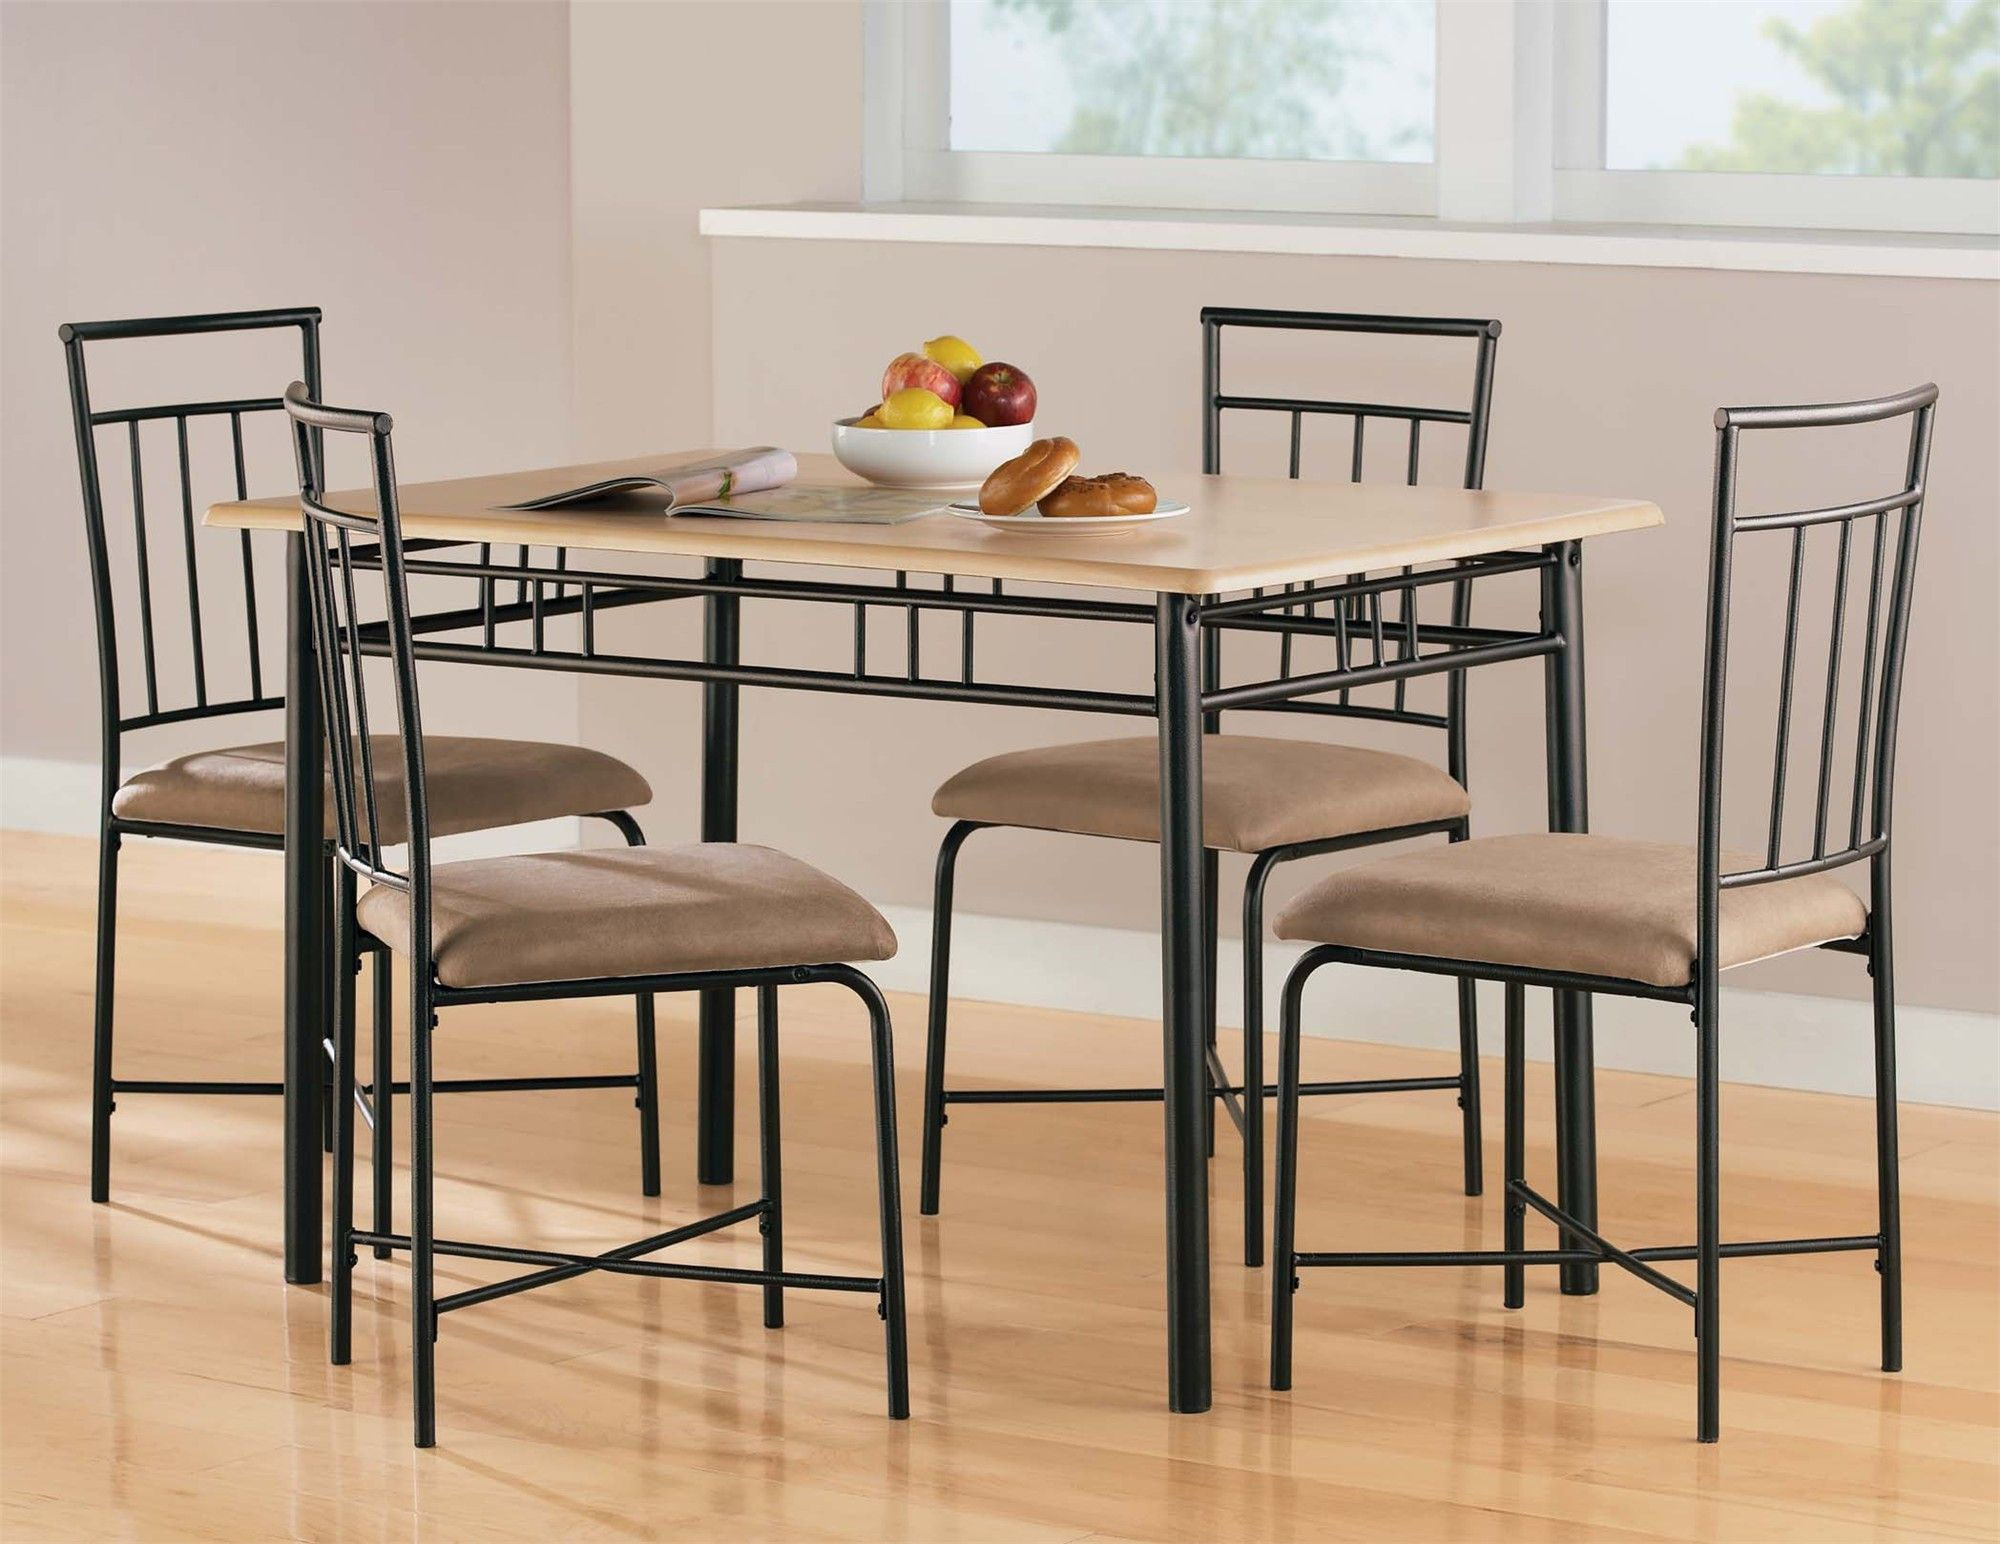 Dining Room Unique Dining Room Furniture Sets With Black Steel Dining Table  4 Chairs Above LaminateDining Room Unique Dining Room Furniture Sets With Black Steel  . Metal Dining Room Table Sets. Home Design Ideas